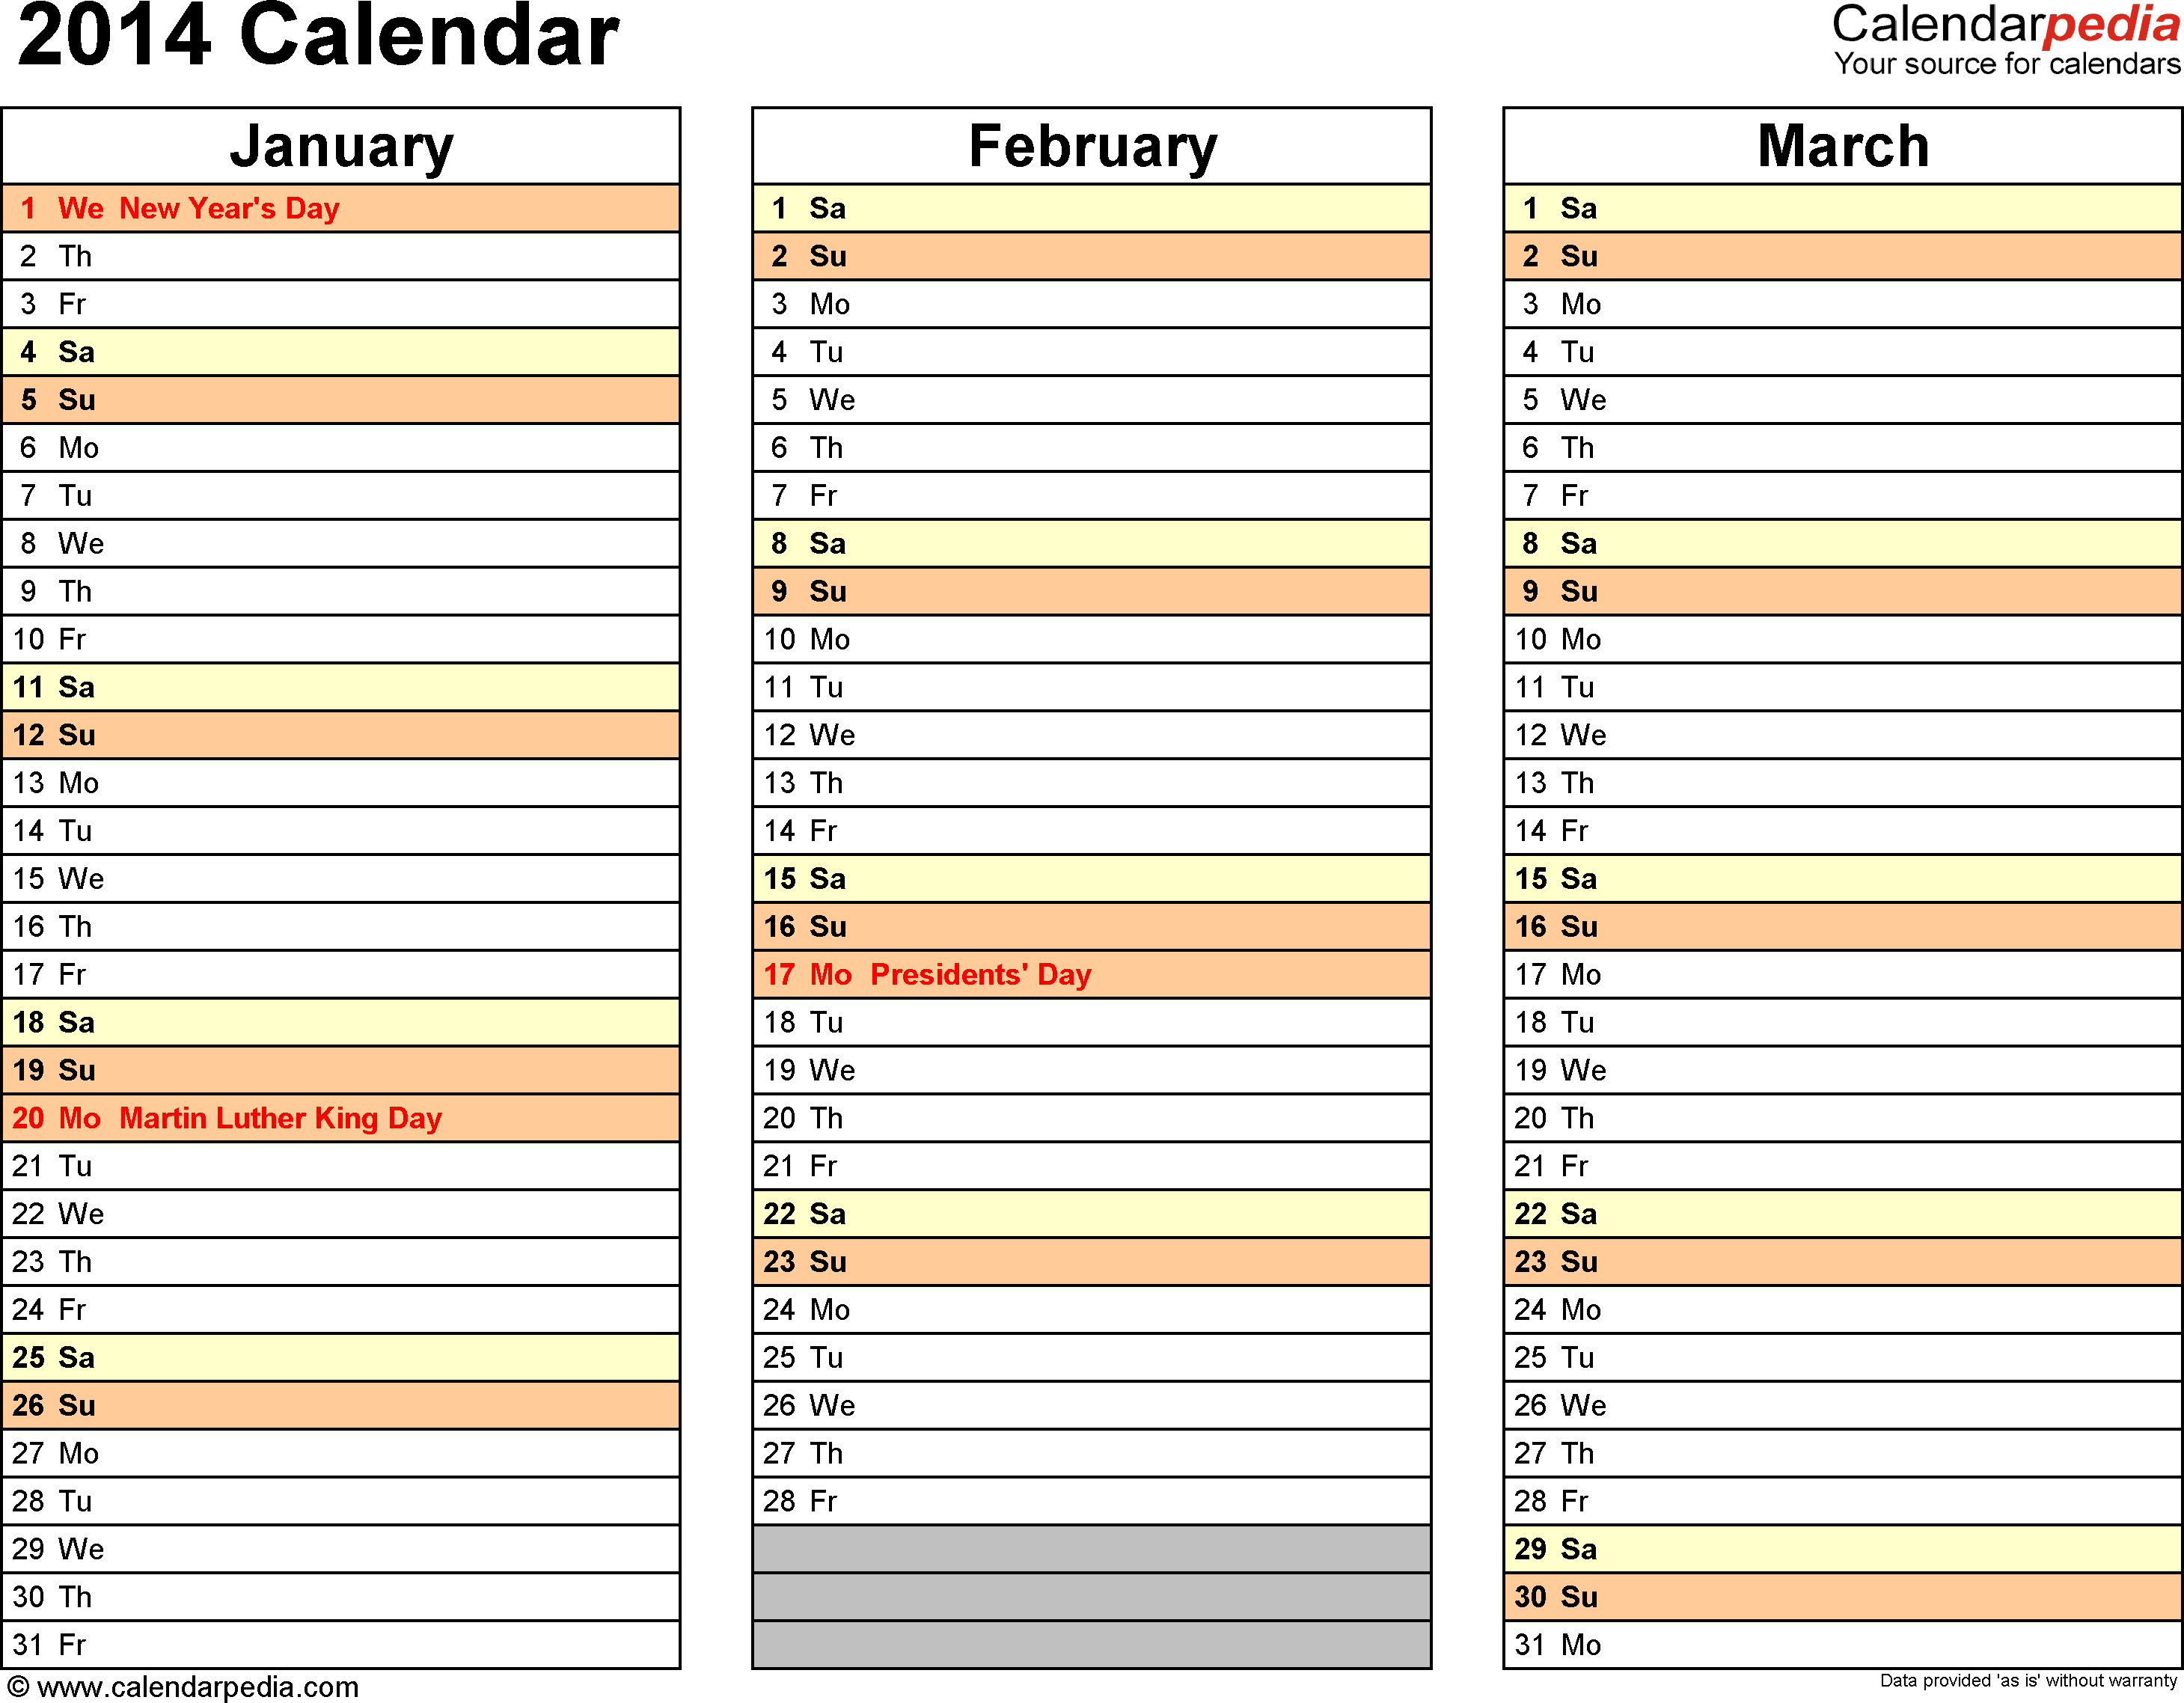 Download Template 5: 2014 Calendar for PDF, landscape orientation, months horizontally, 4 pages